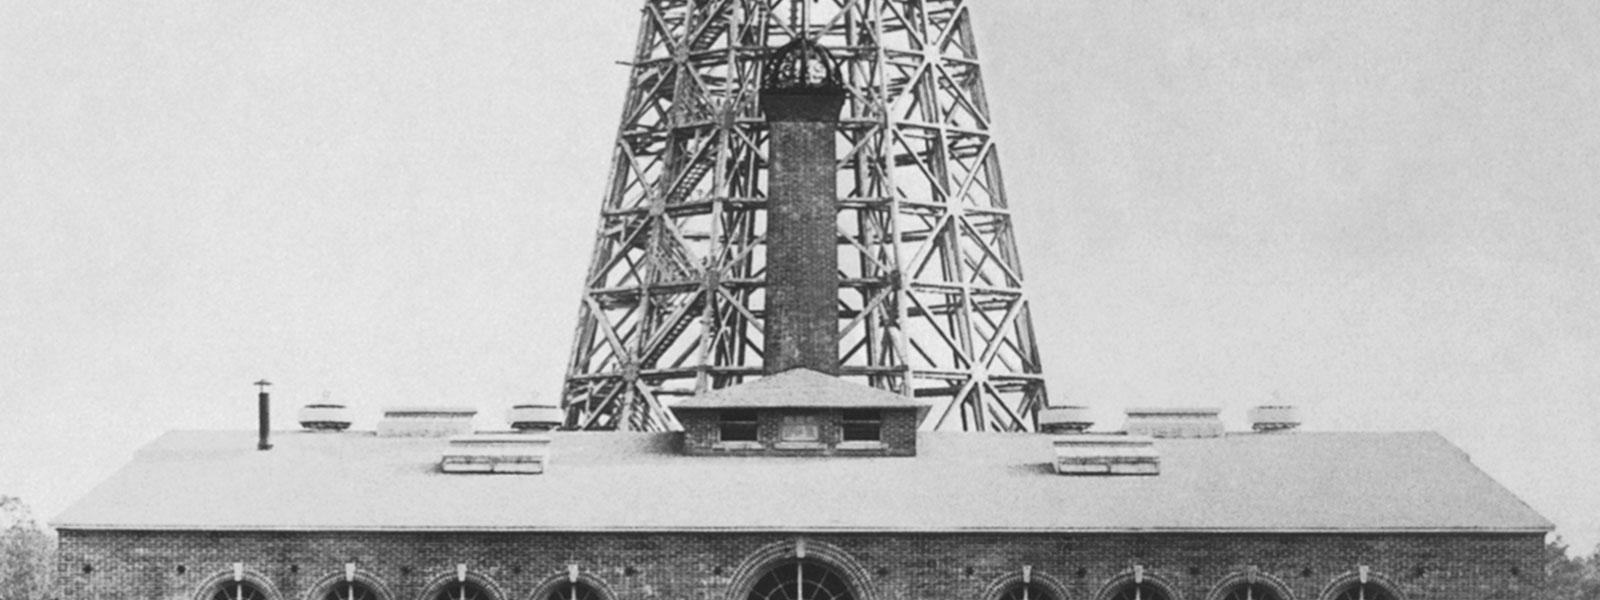 Tesla's Wardenclyffe Tower and Laboratory